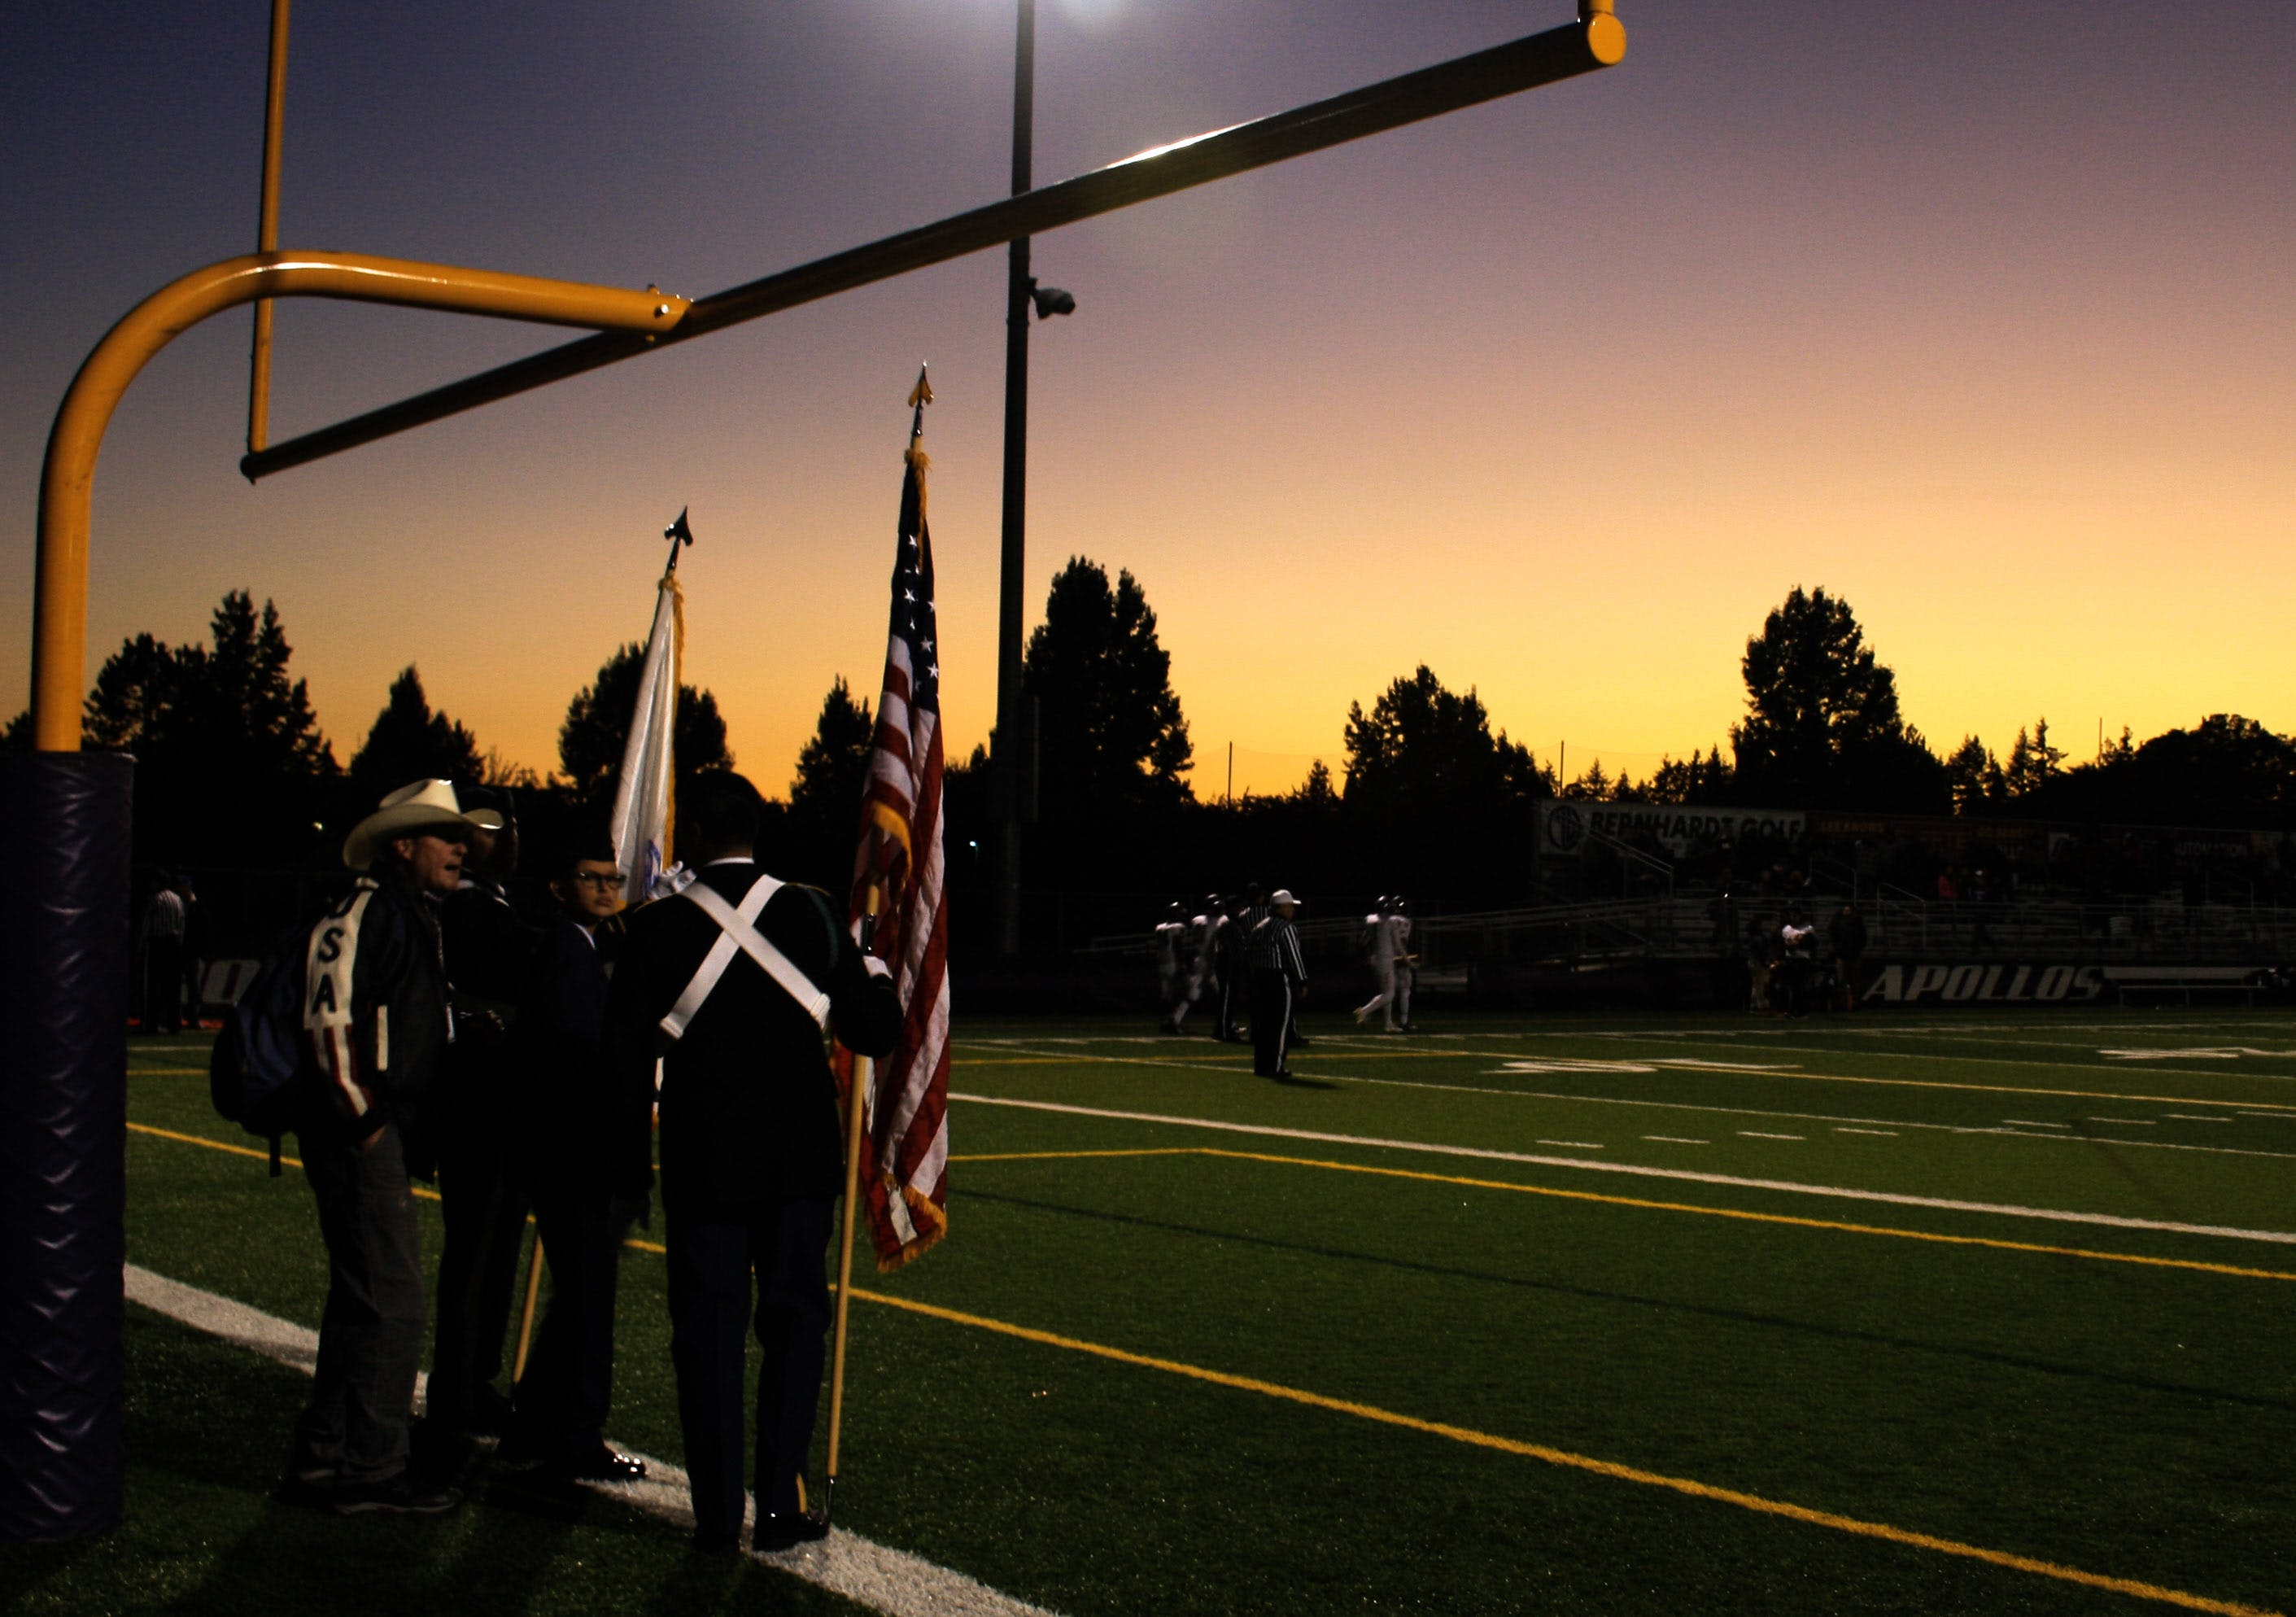 Four People Standing Under on Football Goal during Sunrise